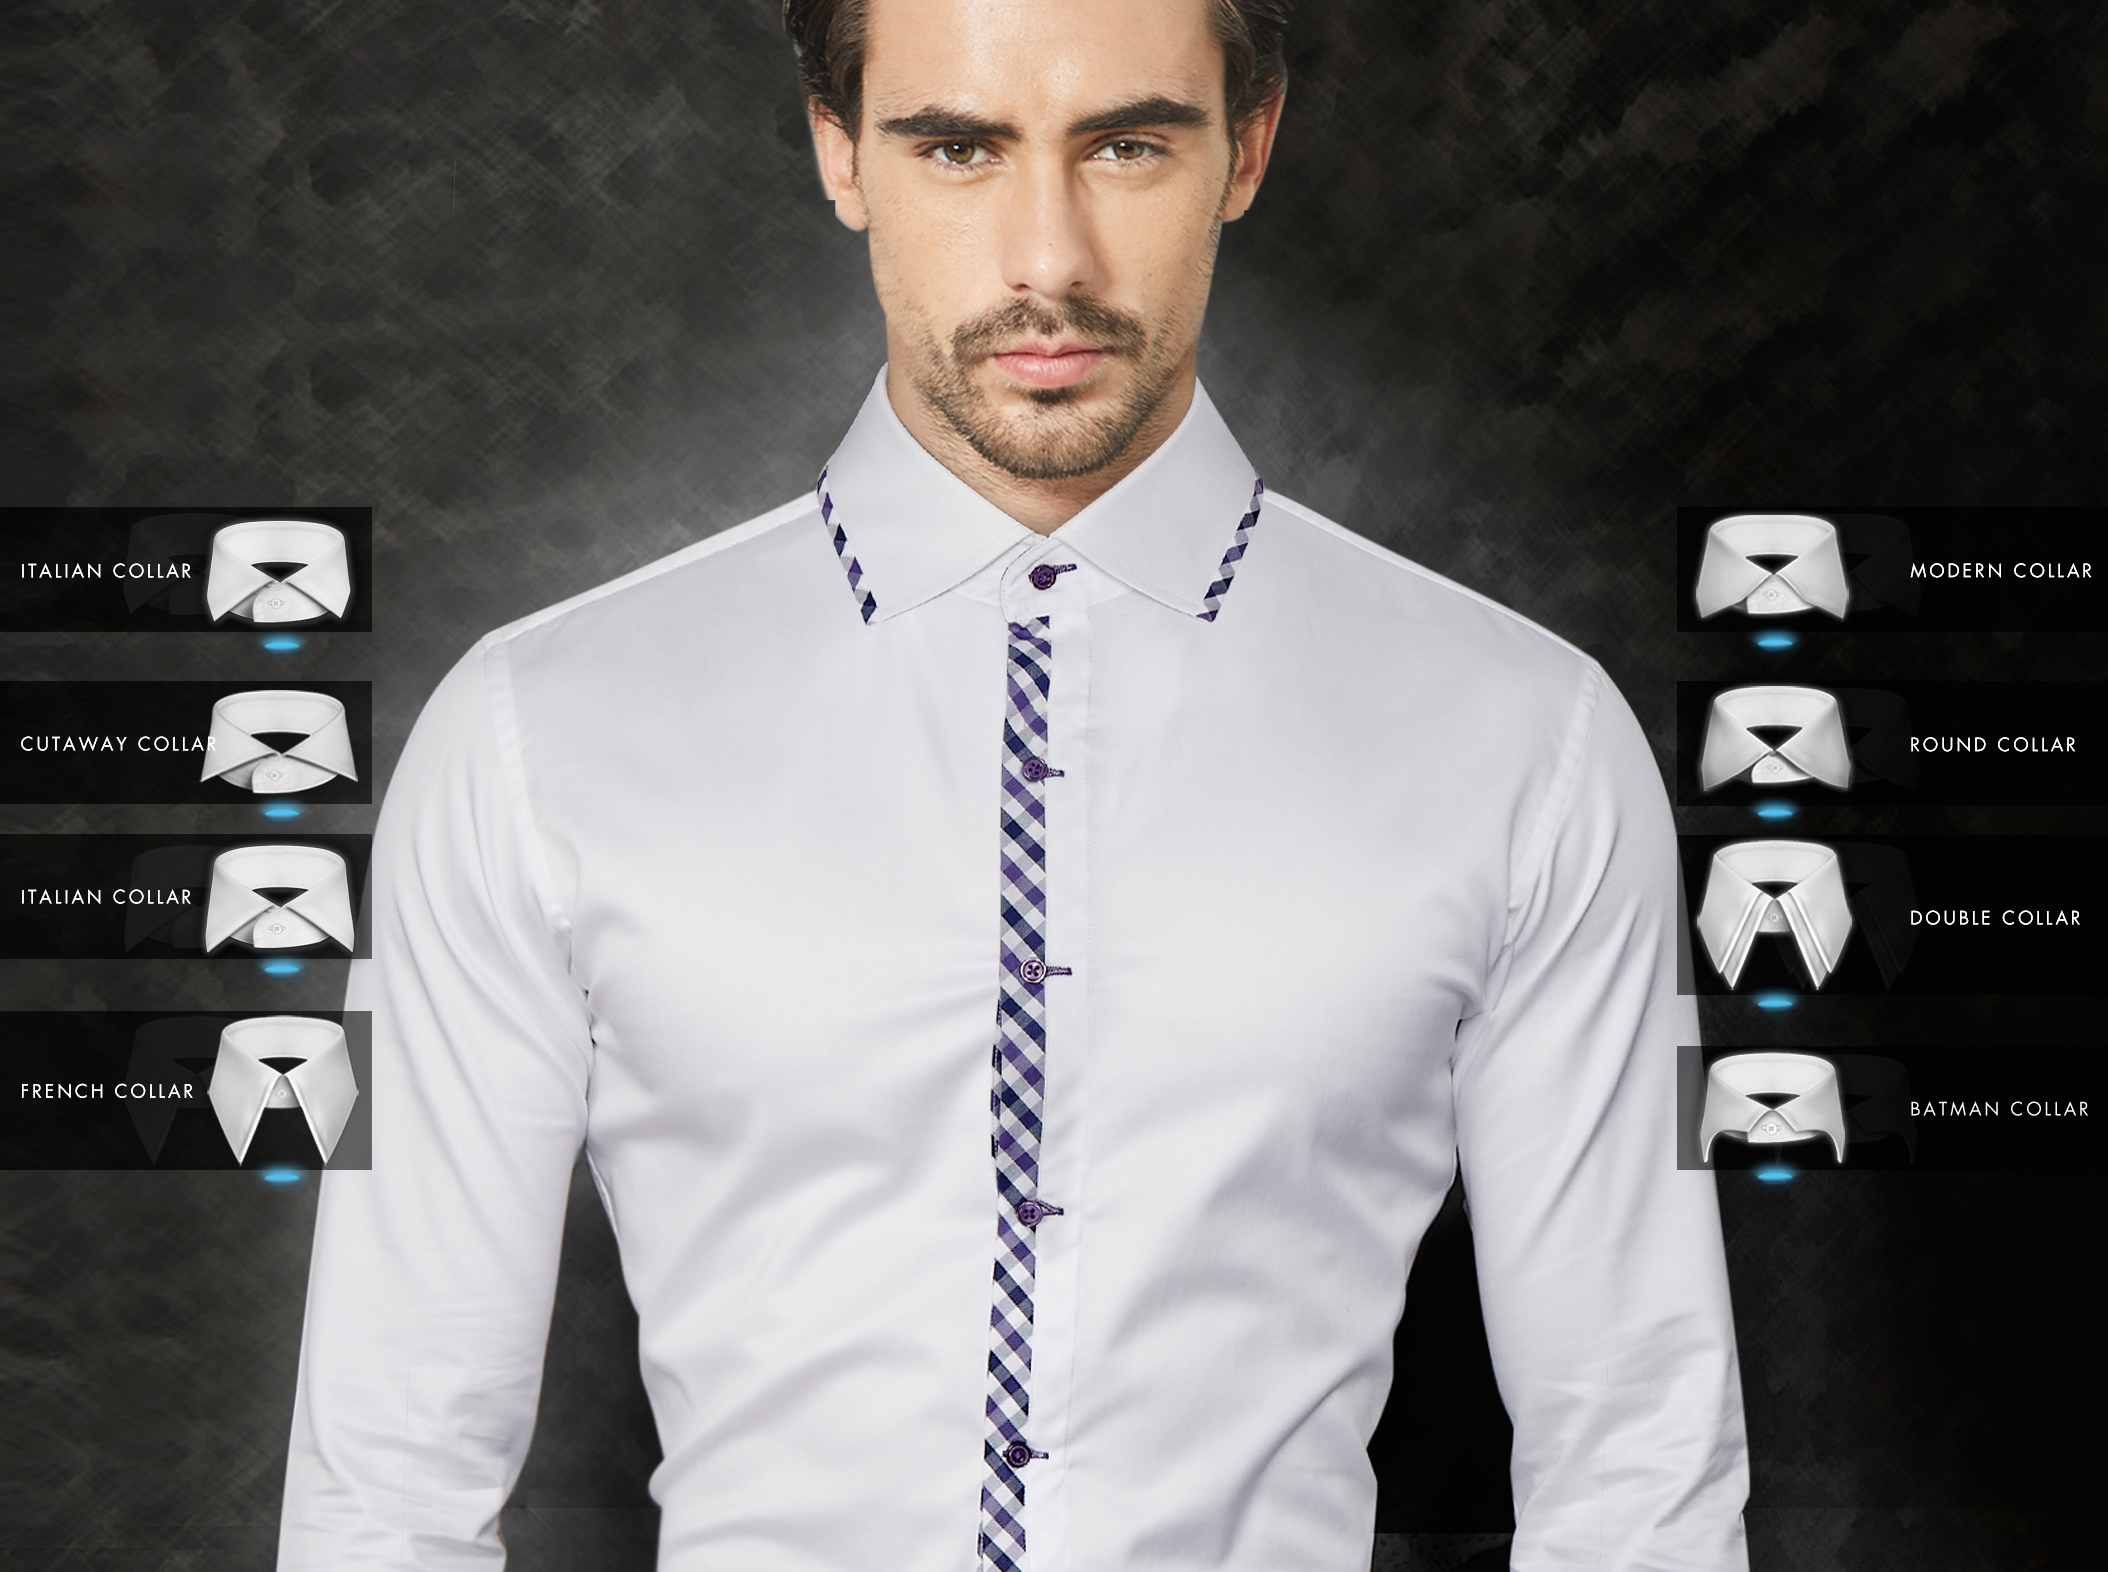 Collar Styles How To Choose A Shirt Collar Itailor Blog